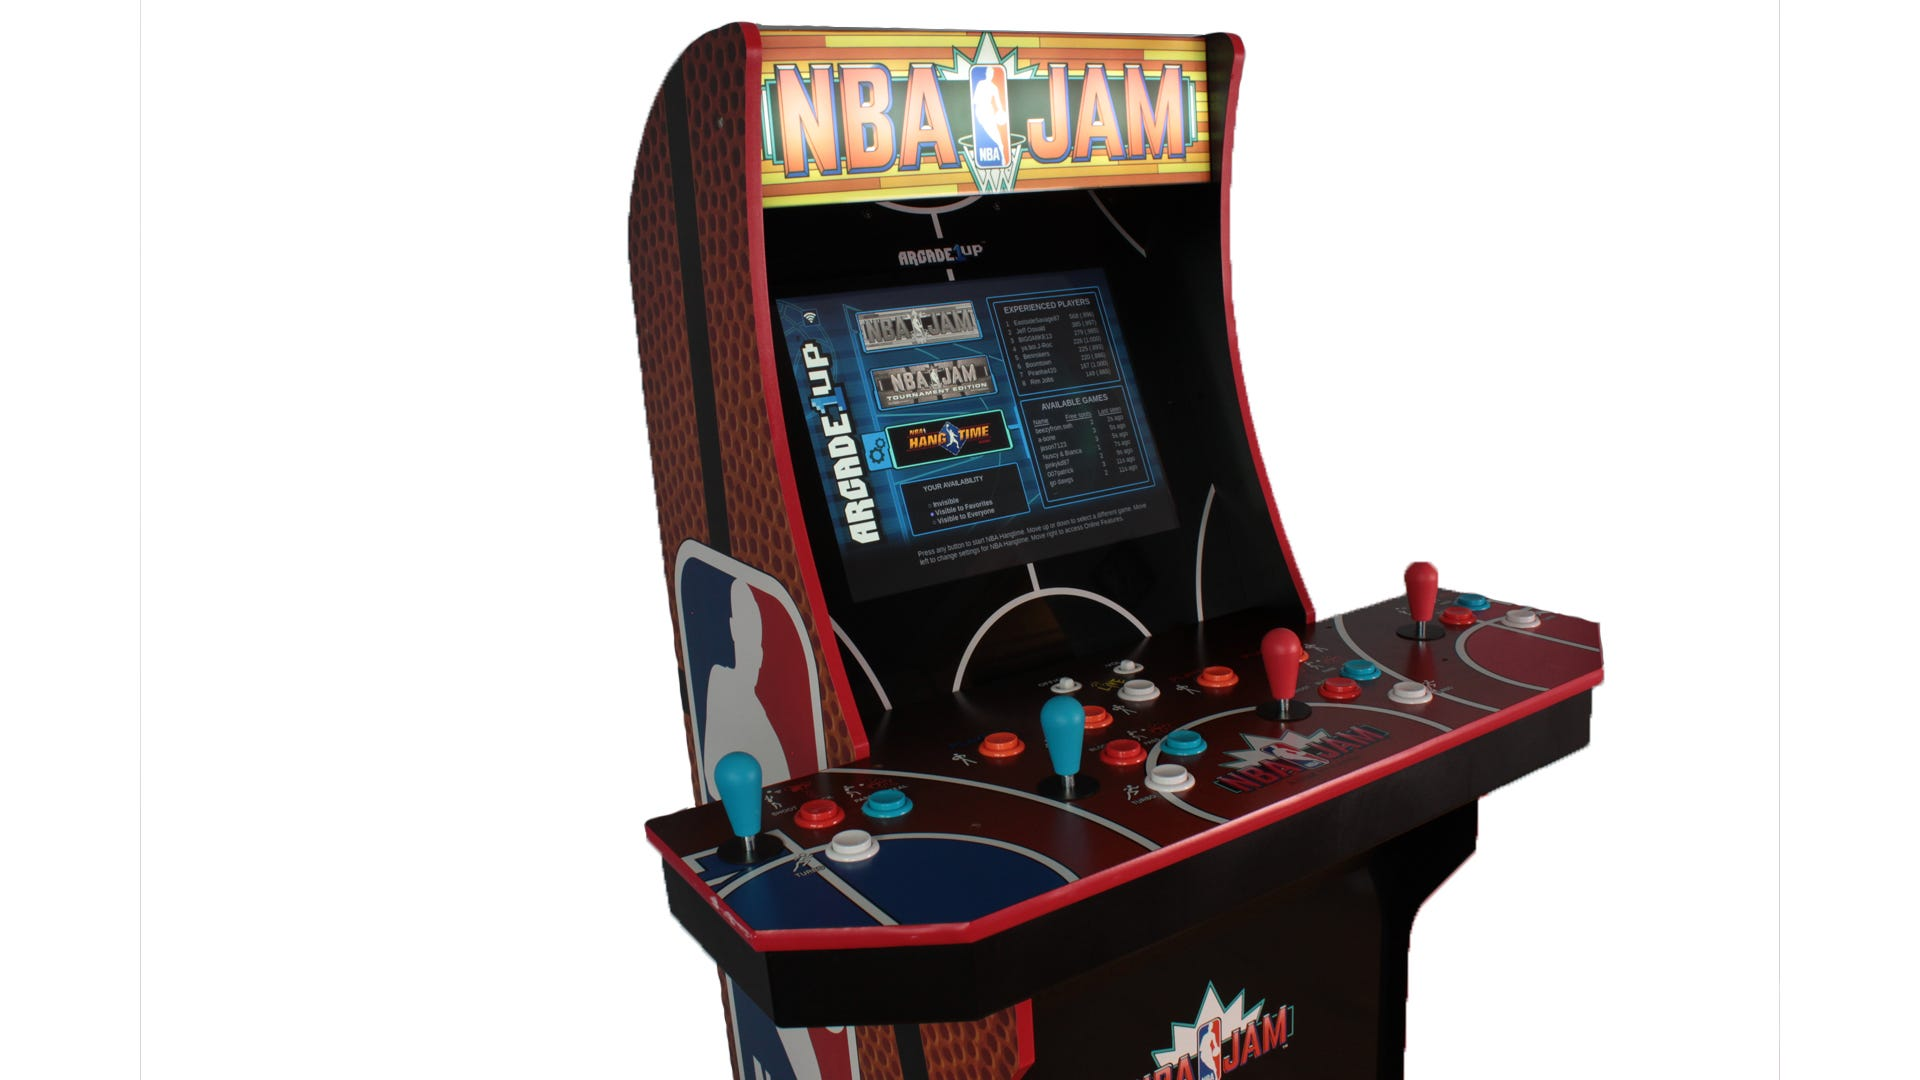 A closeup of the NBA Jam machine's marquee, lit up.